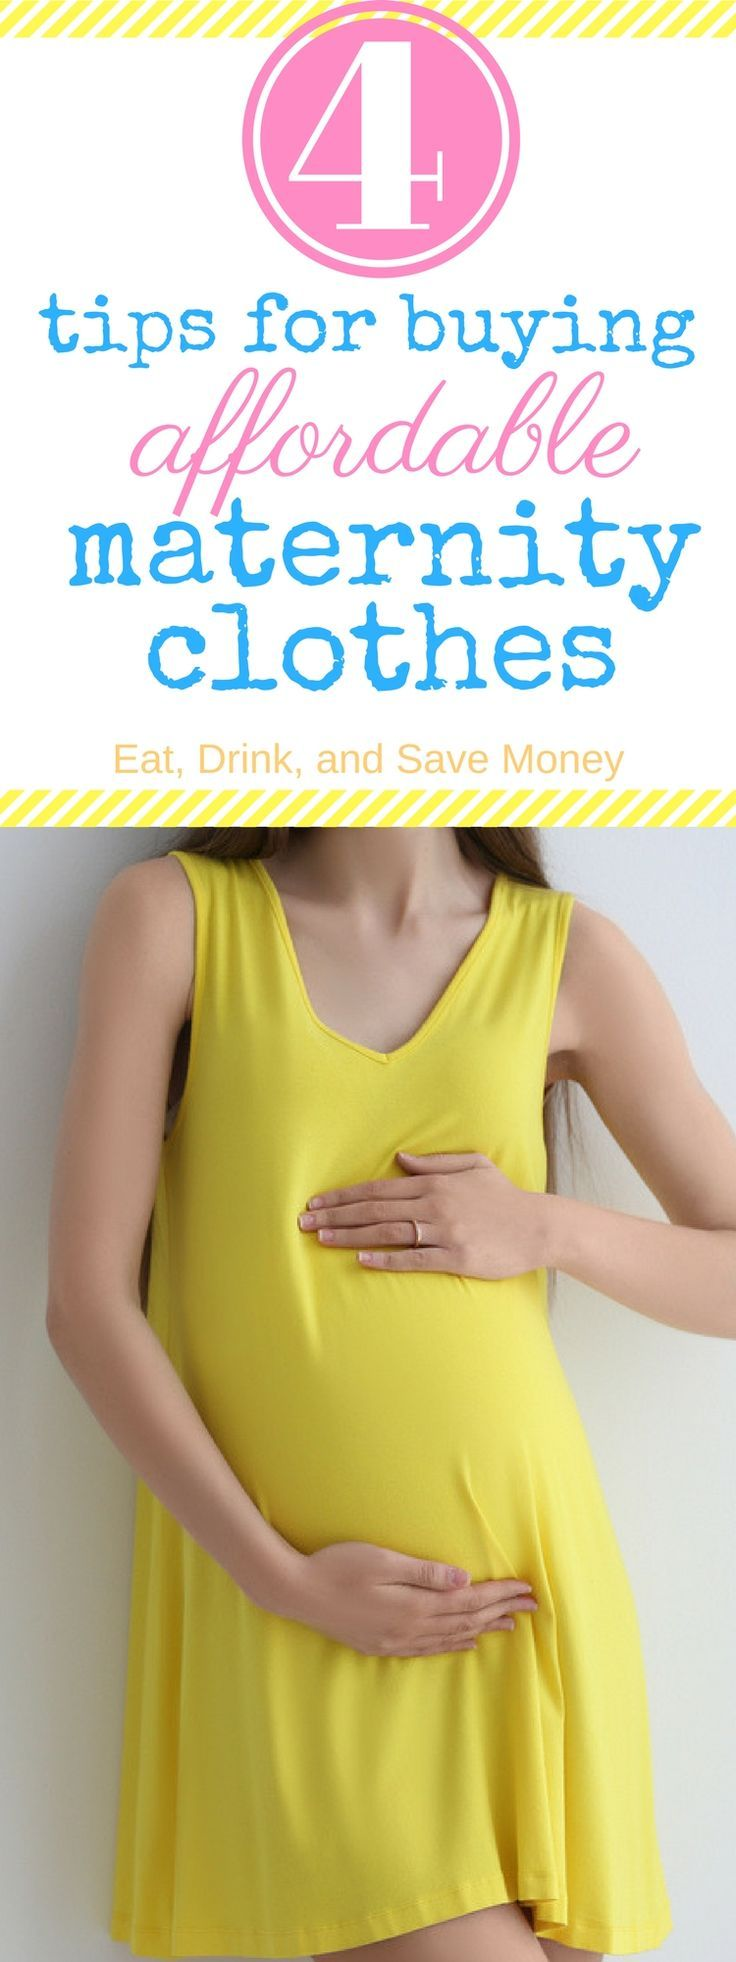 4 tips for buying affordable maternity clothes, get inexpensive maternity clothes, how to find cheap maternity clothes  4 Tips For Buying Affordable Maternity Clothes http://eatdrinkandsavemoney.com/2017/06/28/4-tips-for-buying-affordable-maternity-clothes/